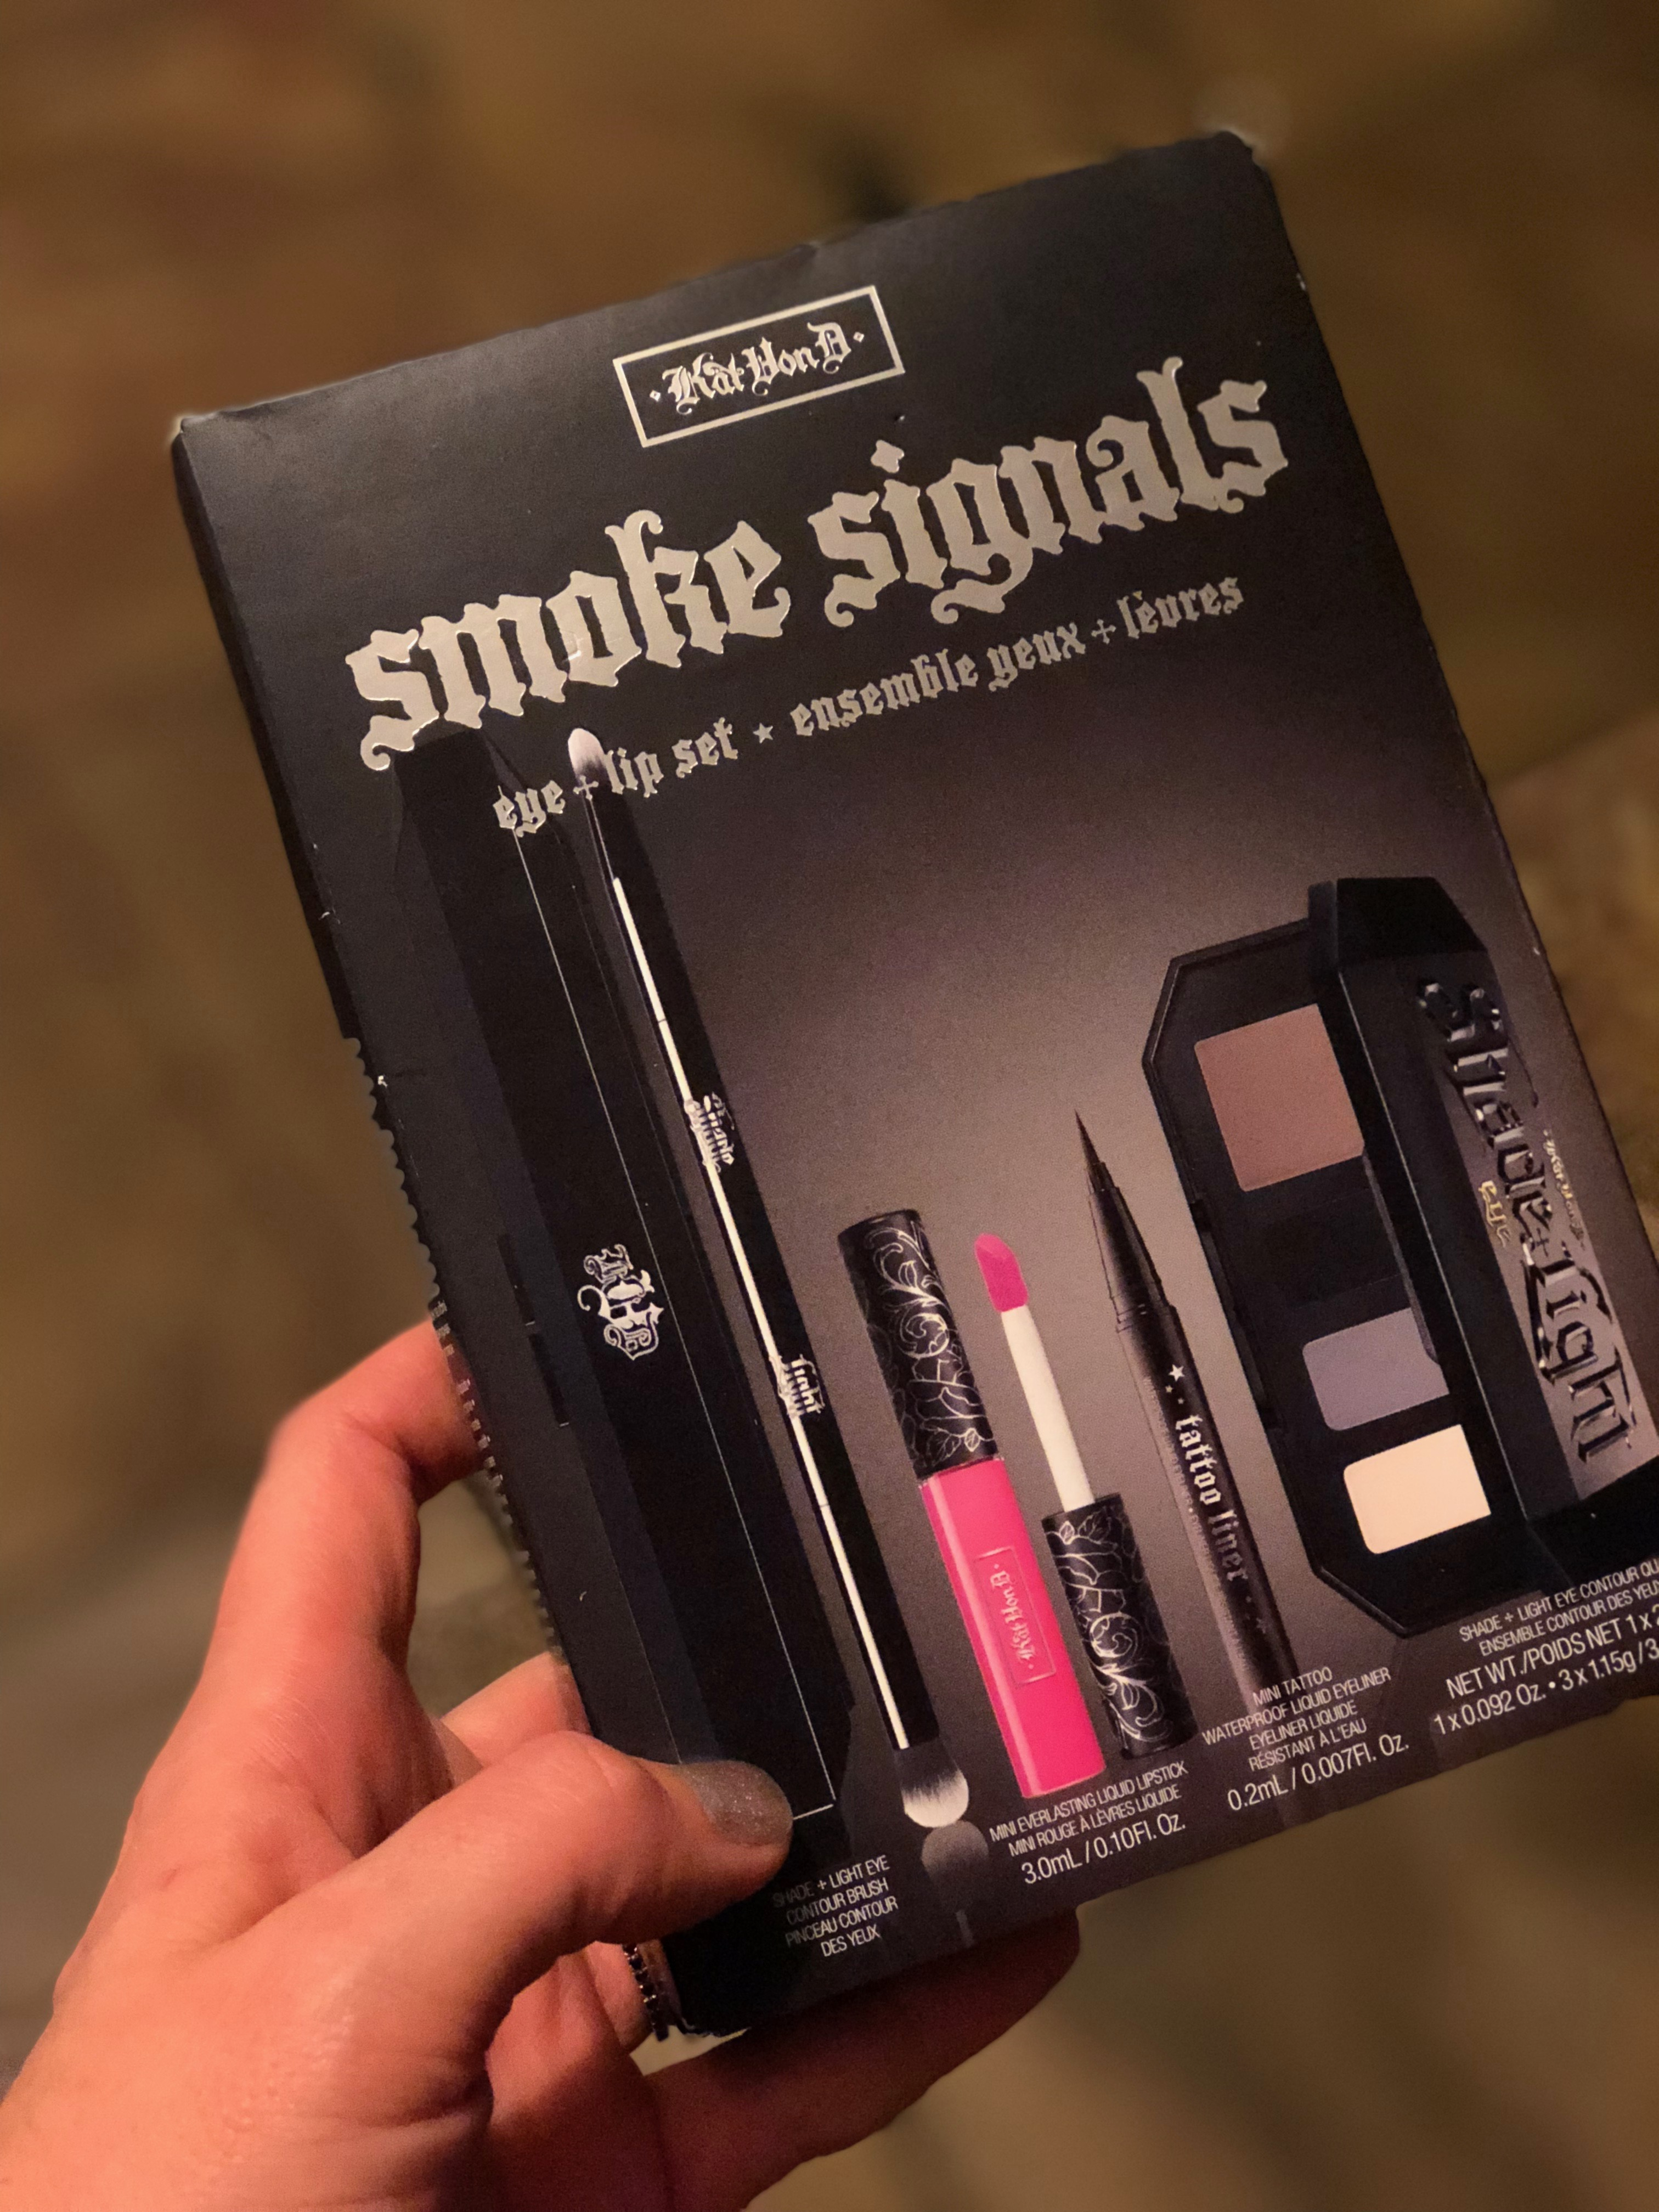 12 fabulous last-minute beauty gifts at Sephora inside JCPenney | Kat Von D smoke signals | Sponsor